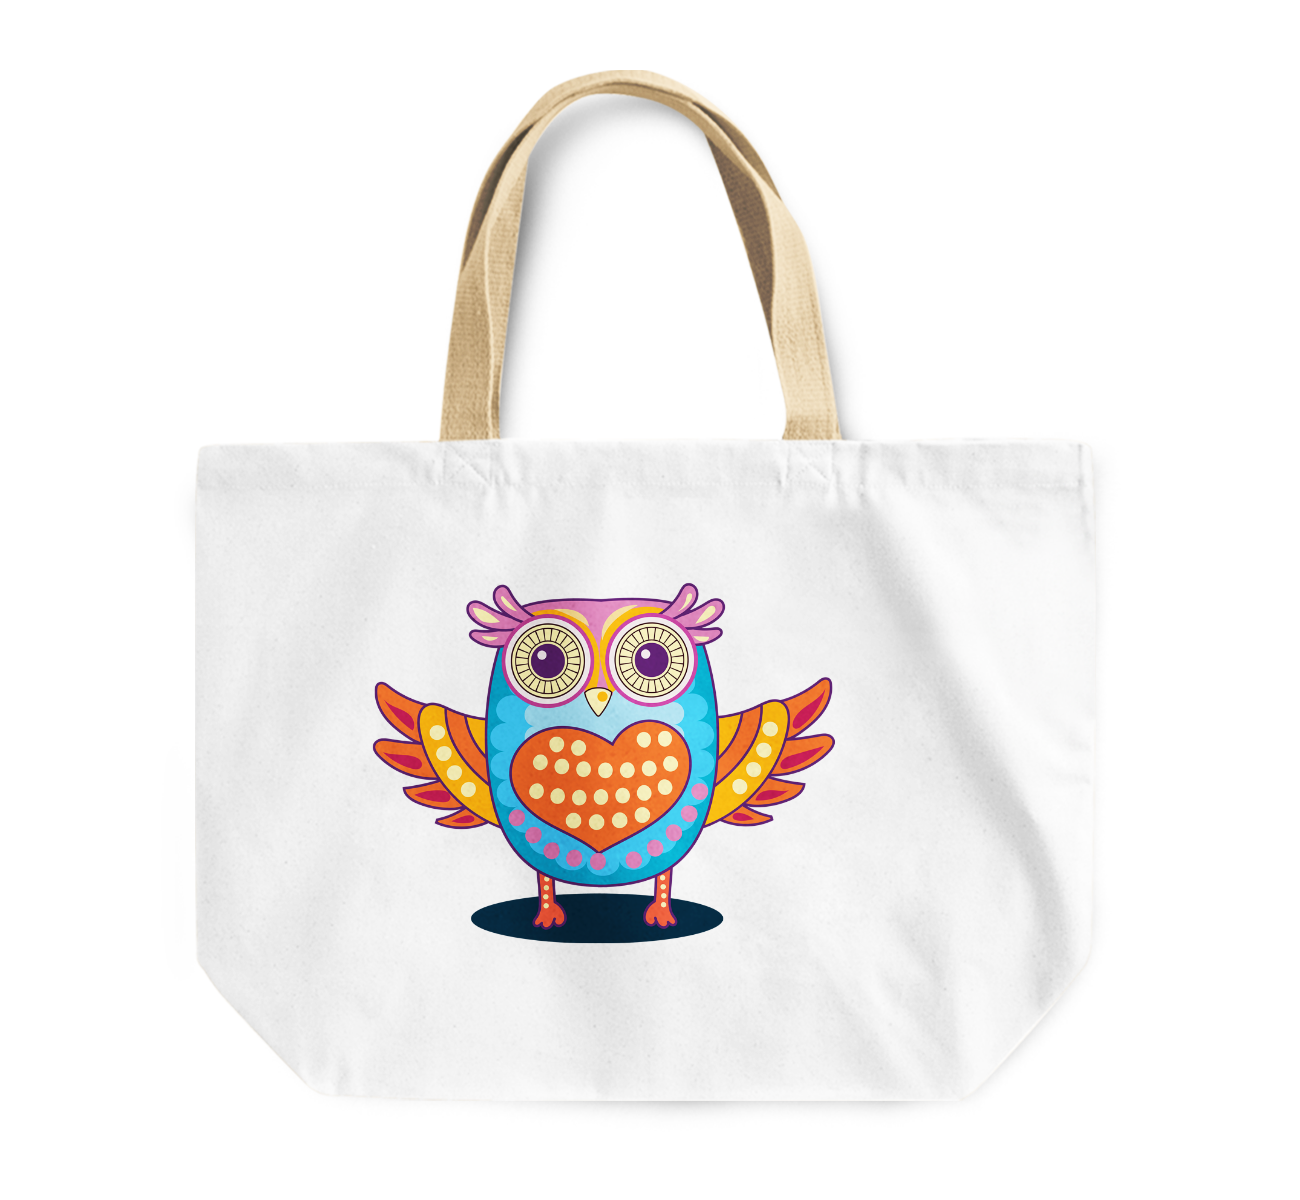 Tote Bag Lovely Cute Owl Heart Reusable Shopping Bag For Couples By Loud Universe